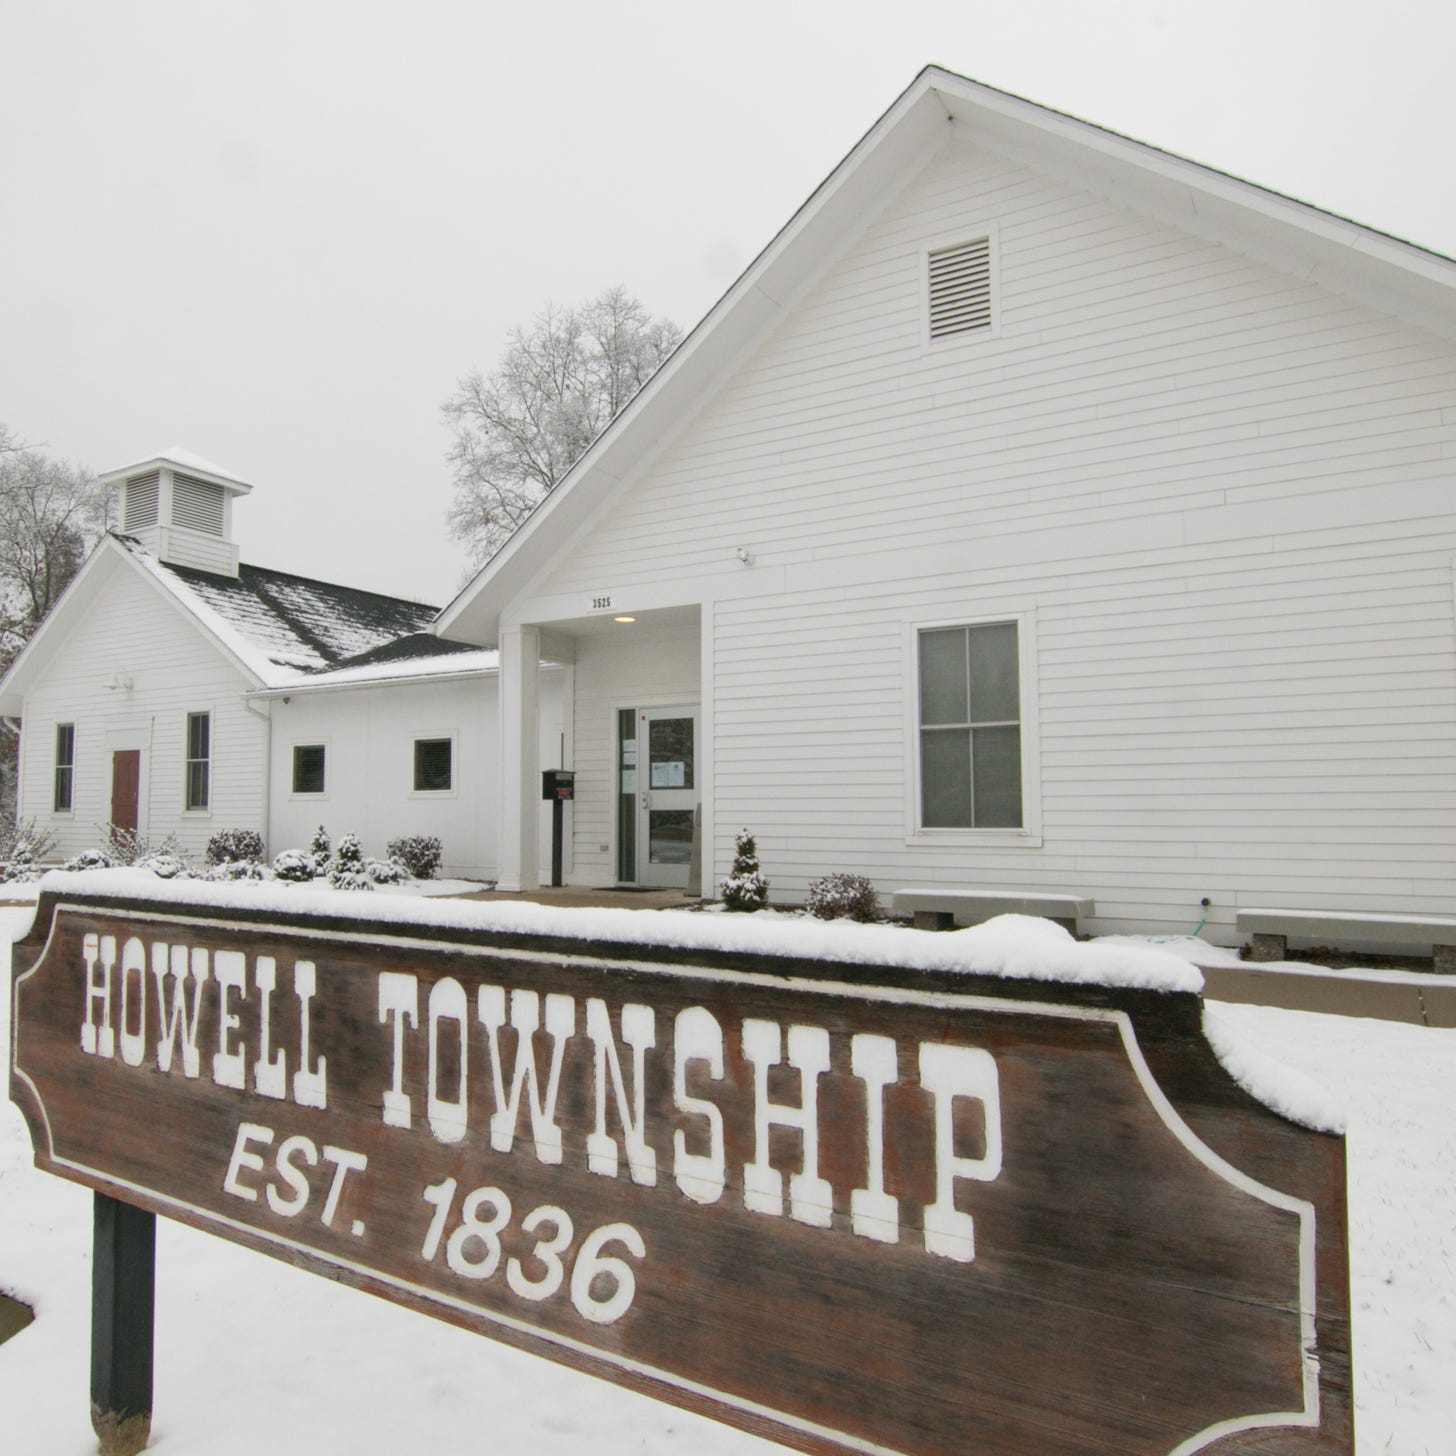 Howell Township sued for not allowing gun range